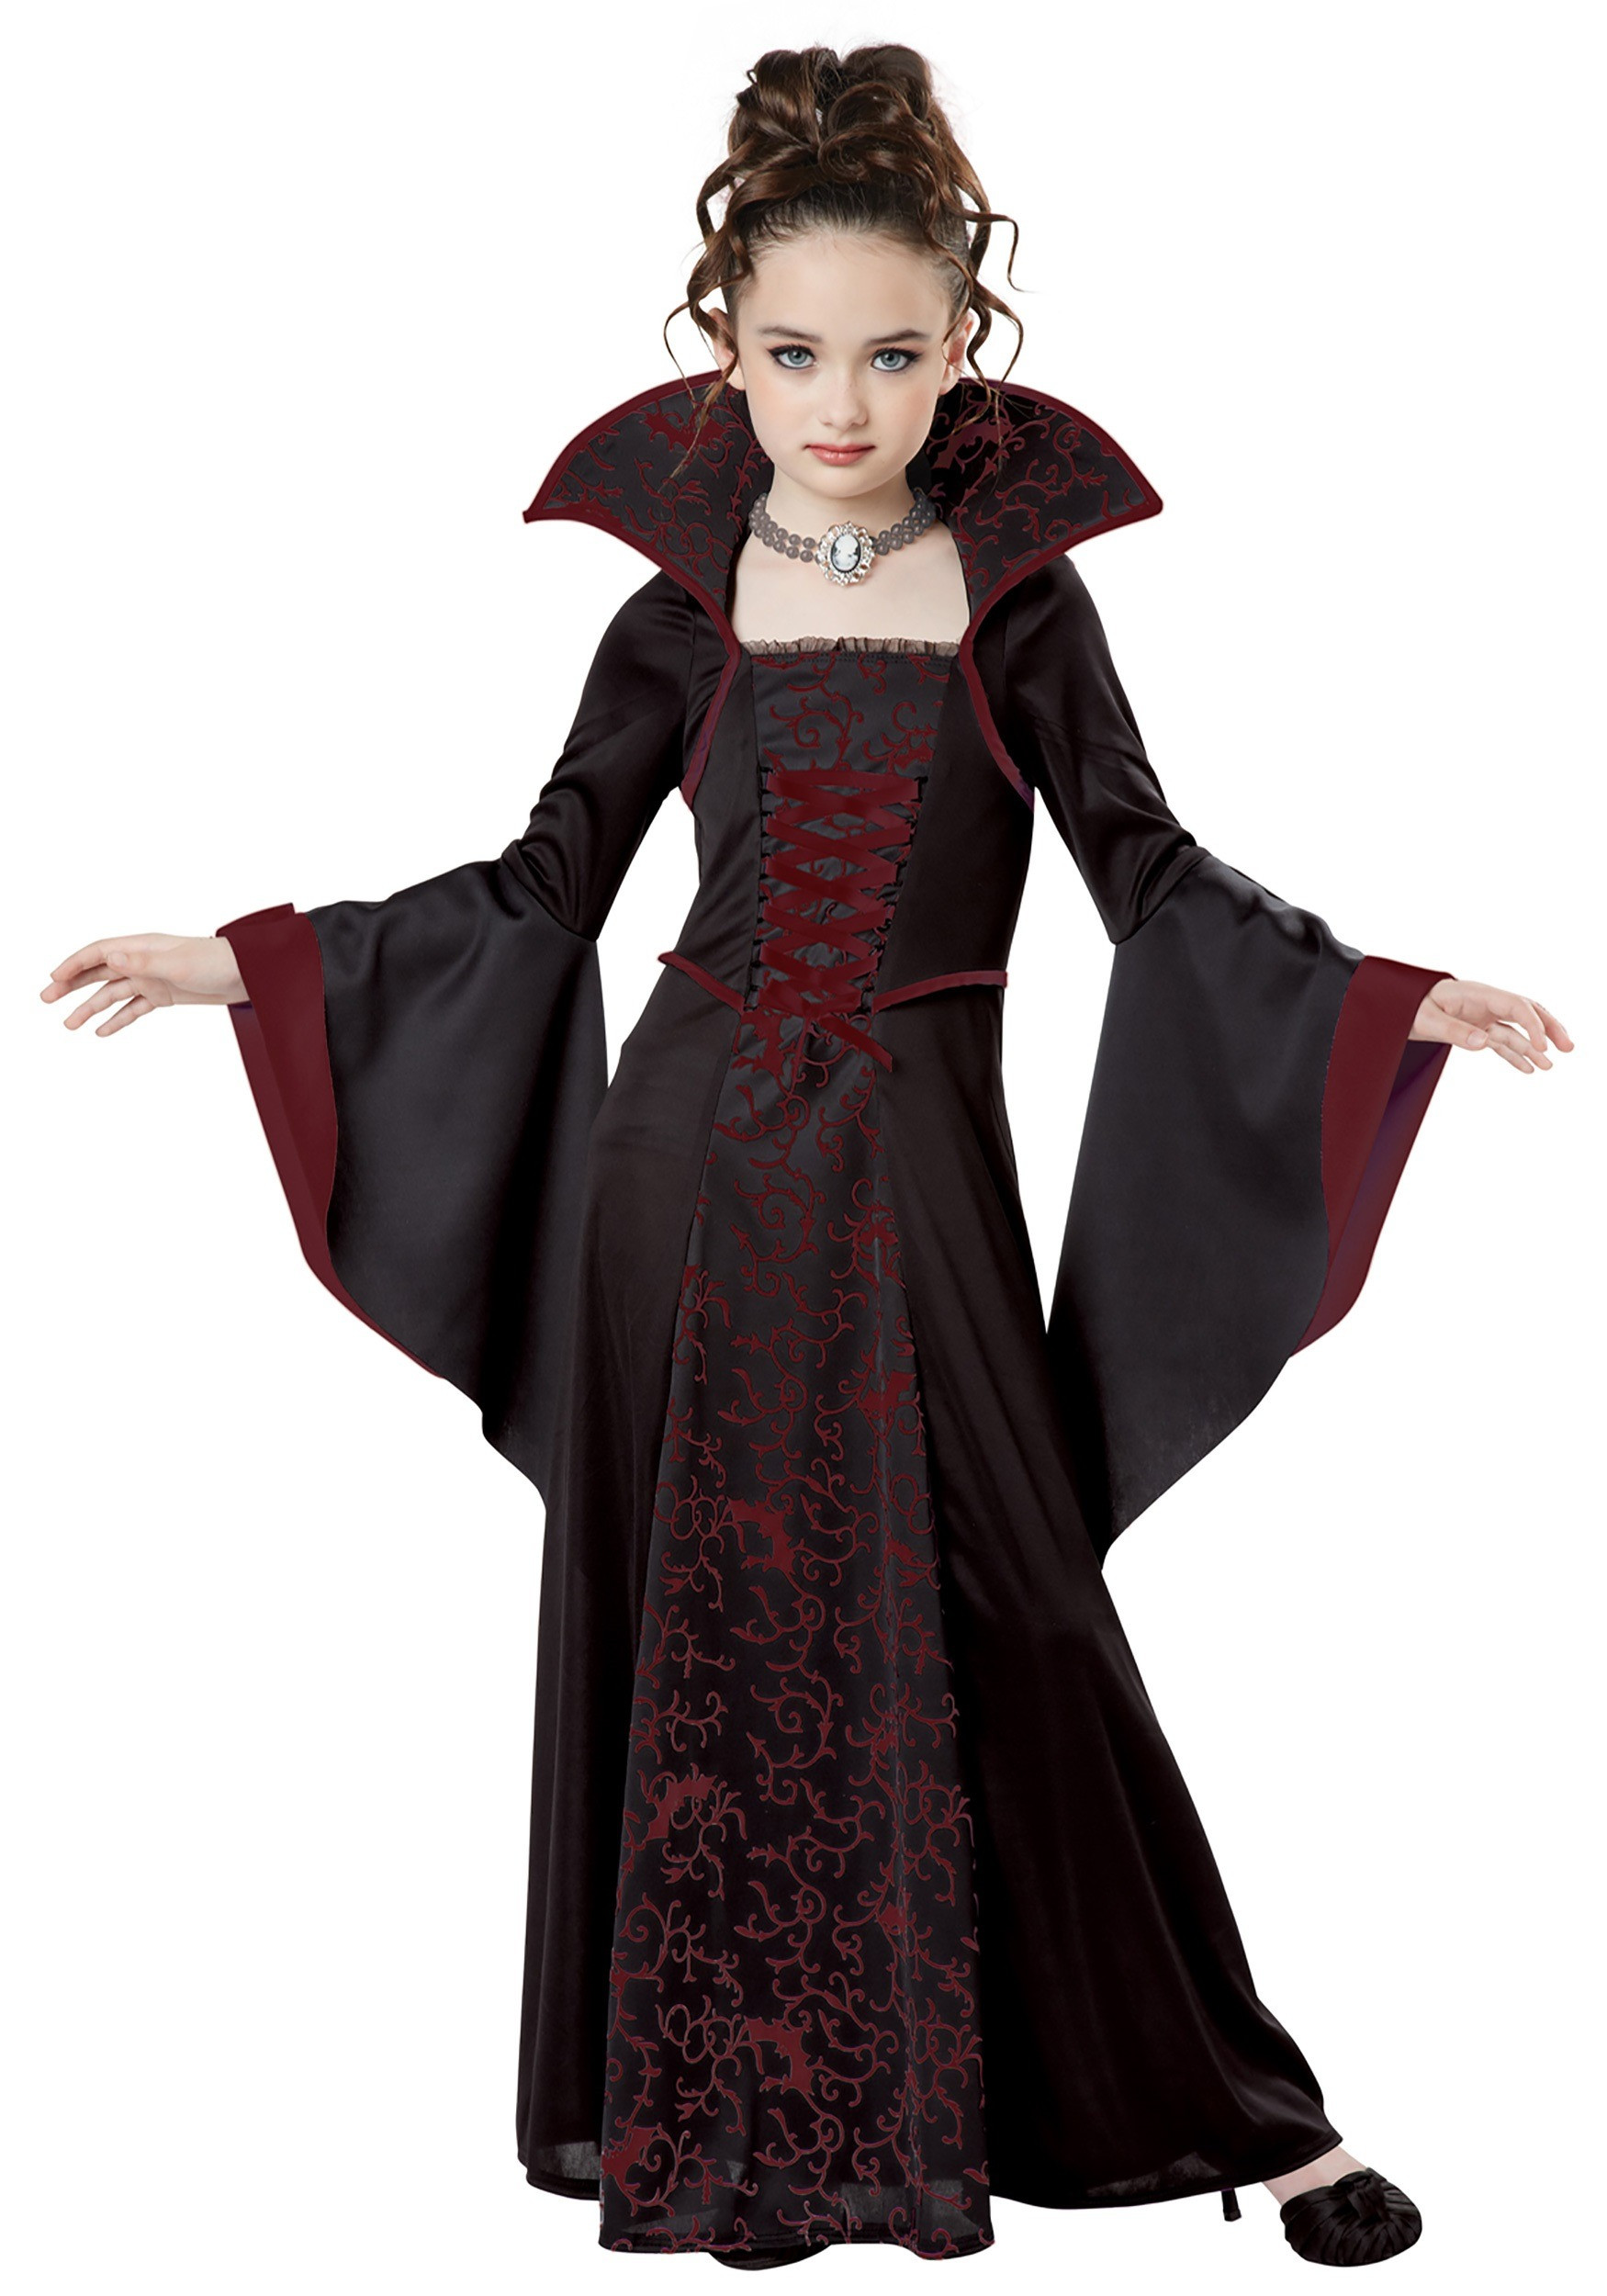 Best ideas about DIY Kids Vampire Costume . Save or Pin Child Royal Vampire Costume Now.